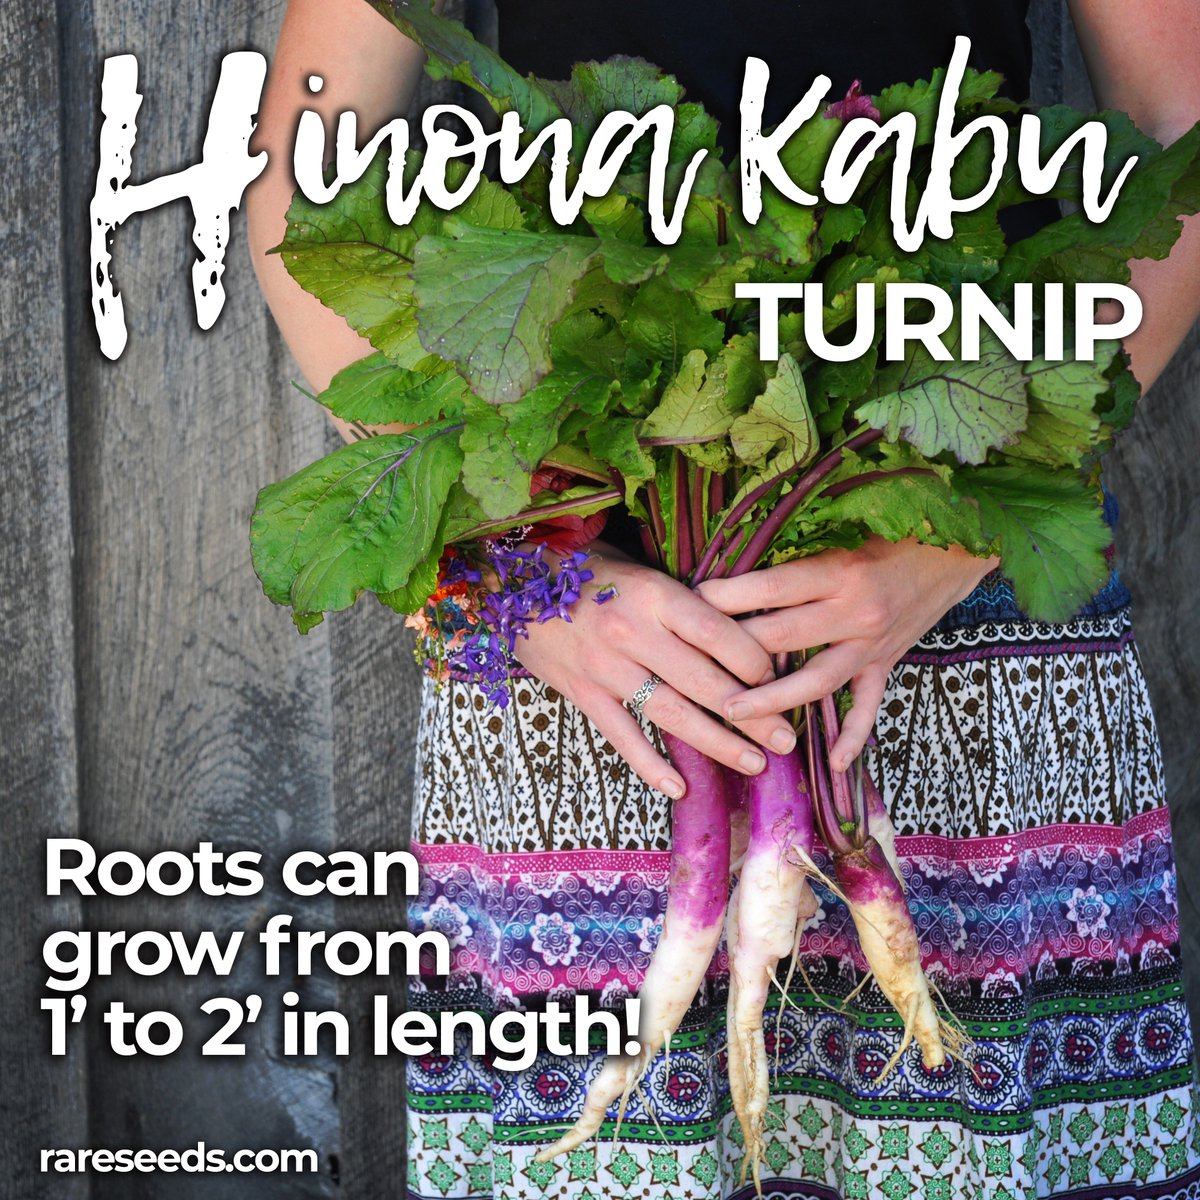 Special Reply Retweets Likes Baker Creek Seeds Twitter Baker Creek Seeds Free Shipping Bakers Creek Seeds Promo Code houzz-03 Bakers Creek Seeds